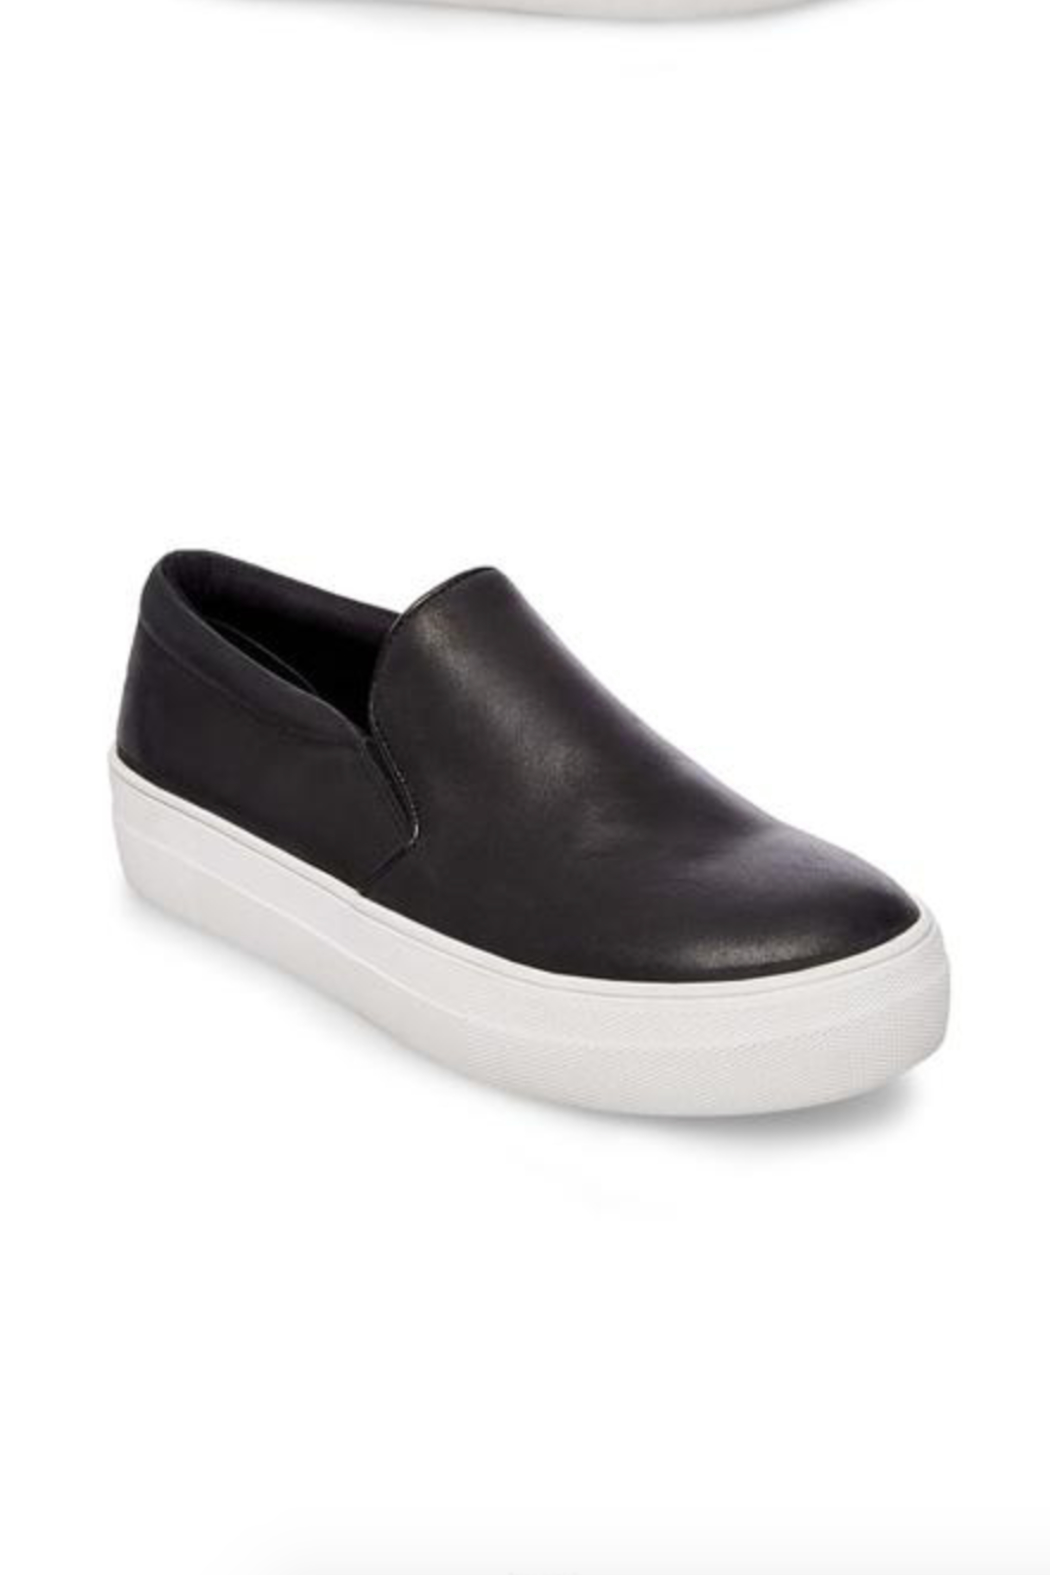 dbc7191f177 Steve Madden Shoes Gills Leather Sneaker from Marina by y i clothing ...